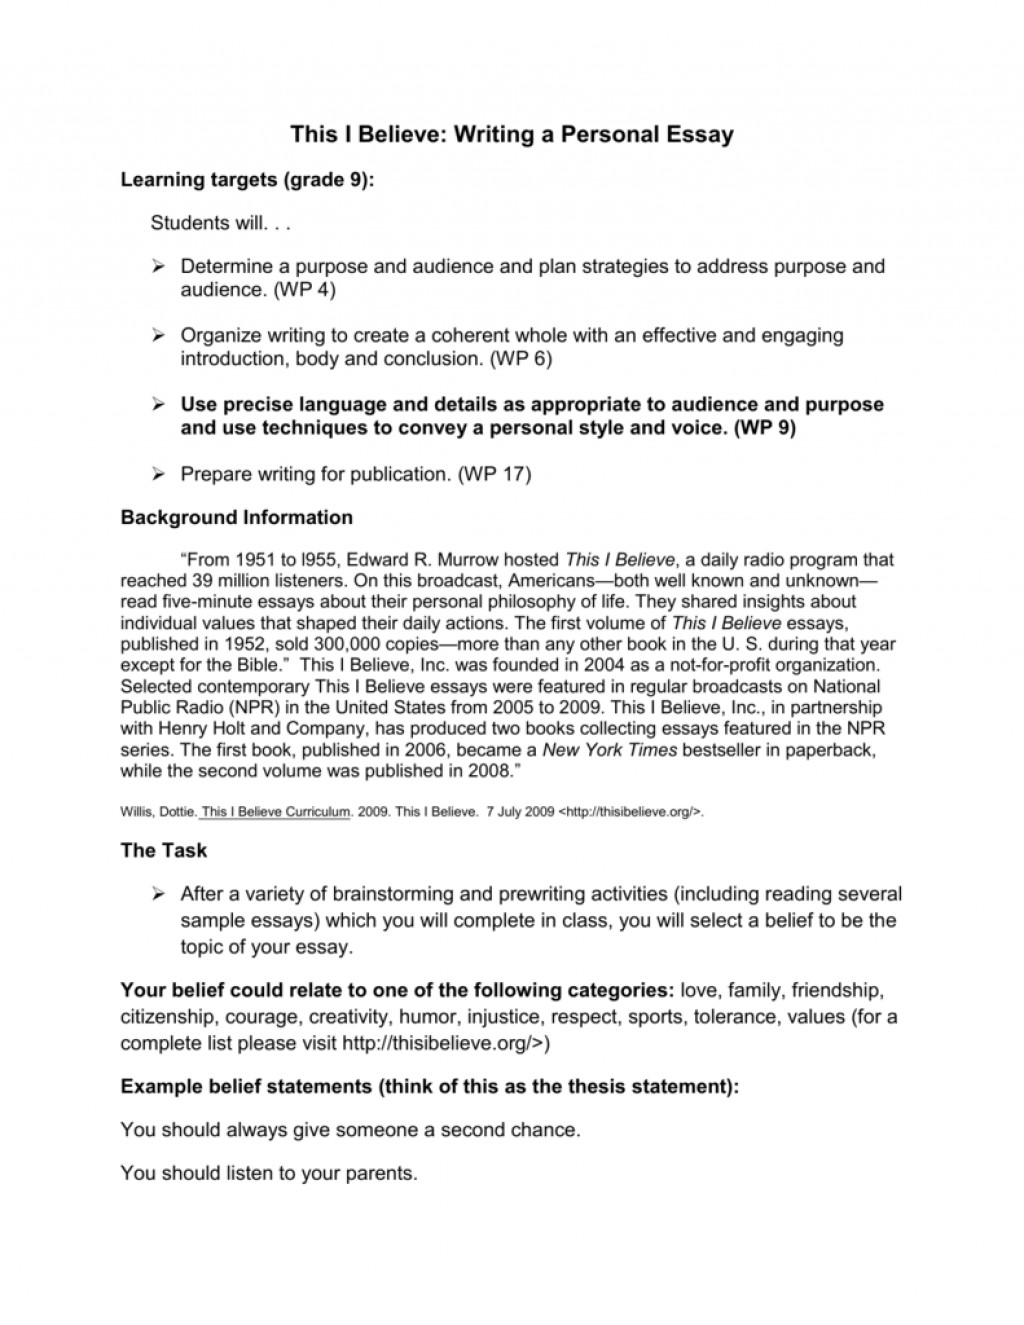 002 006750112 1 This I Believe Essay Singular Npr Examples Assignment Large